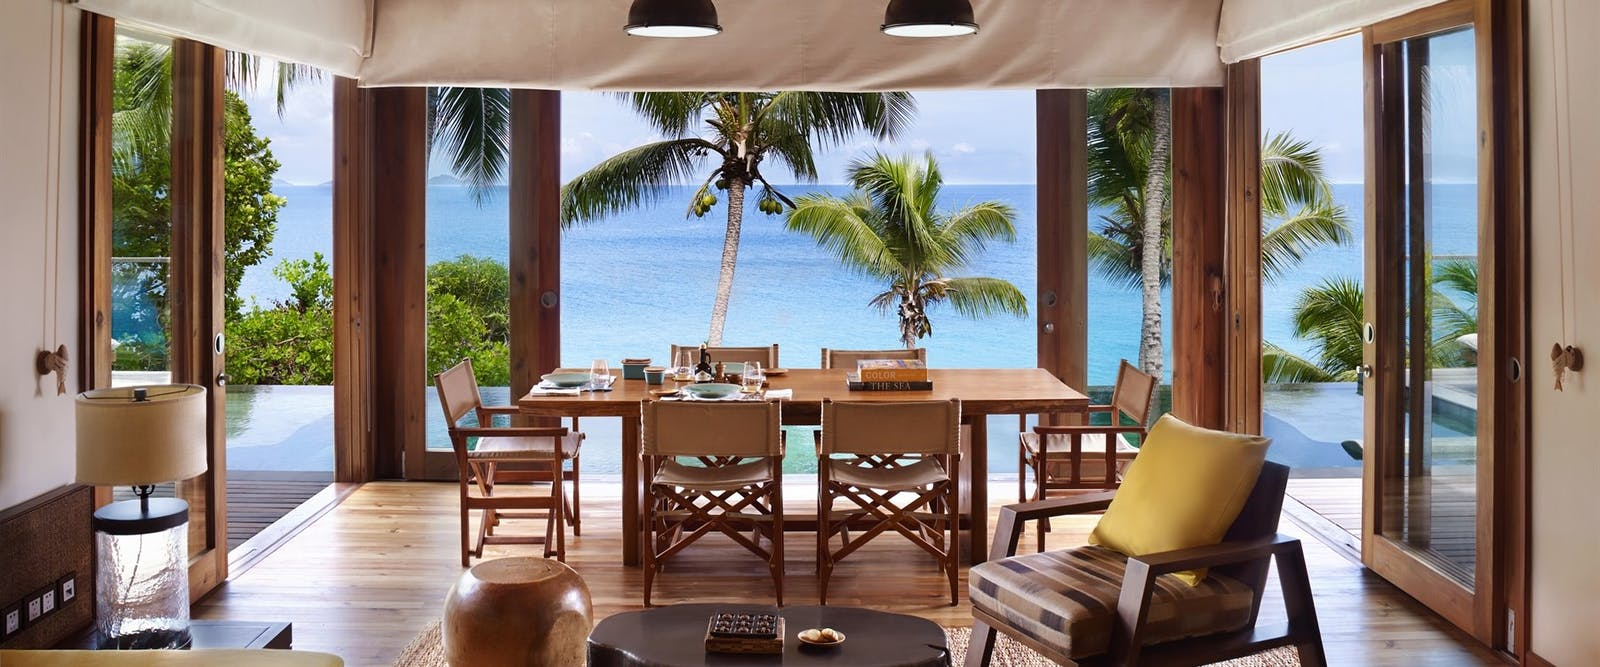 Pool Villa Living Room at six senses zil payson seychelles